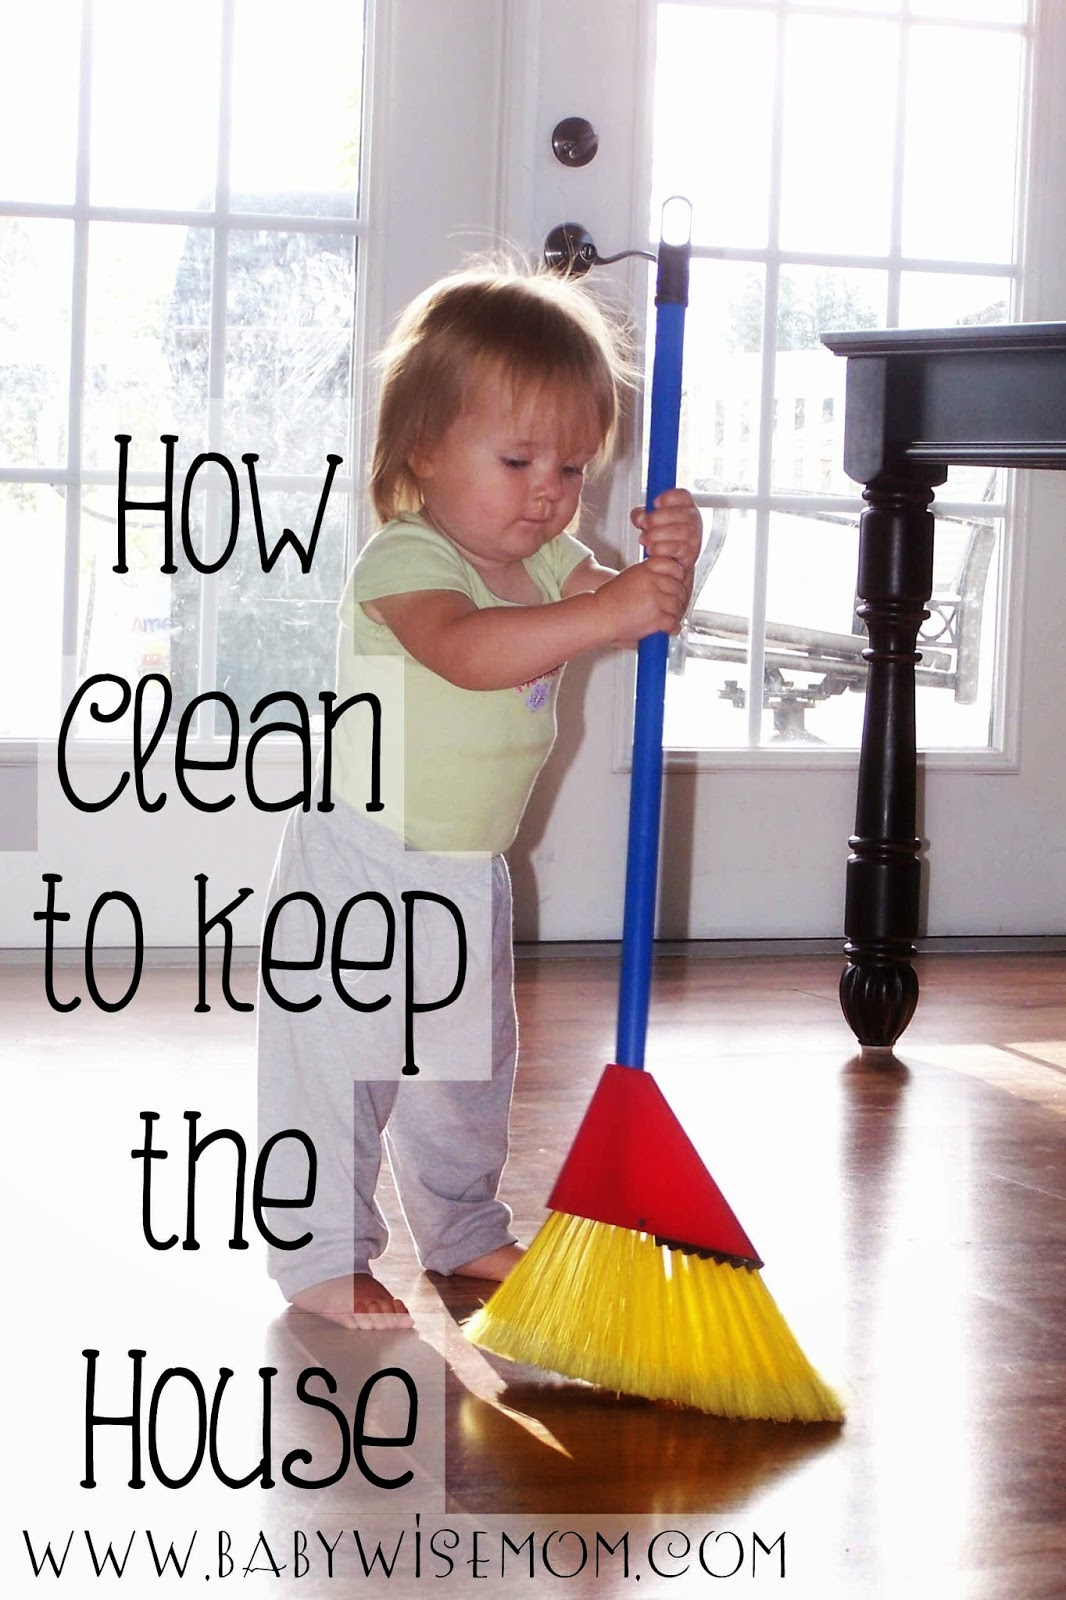 How clean do you need to keep your house?